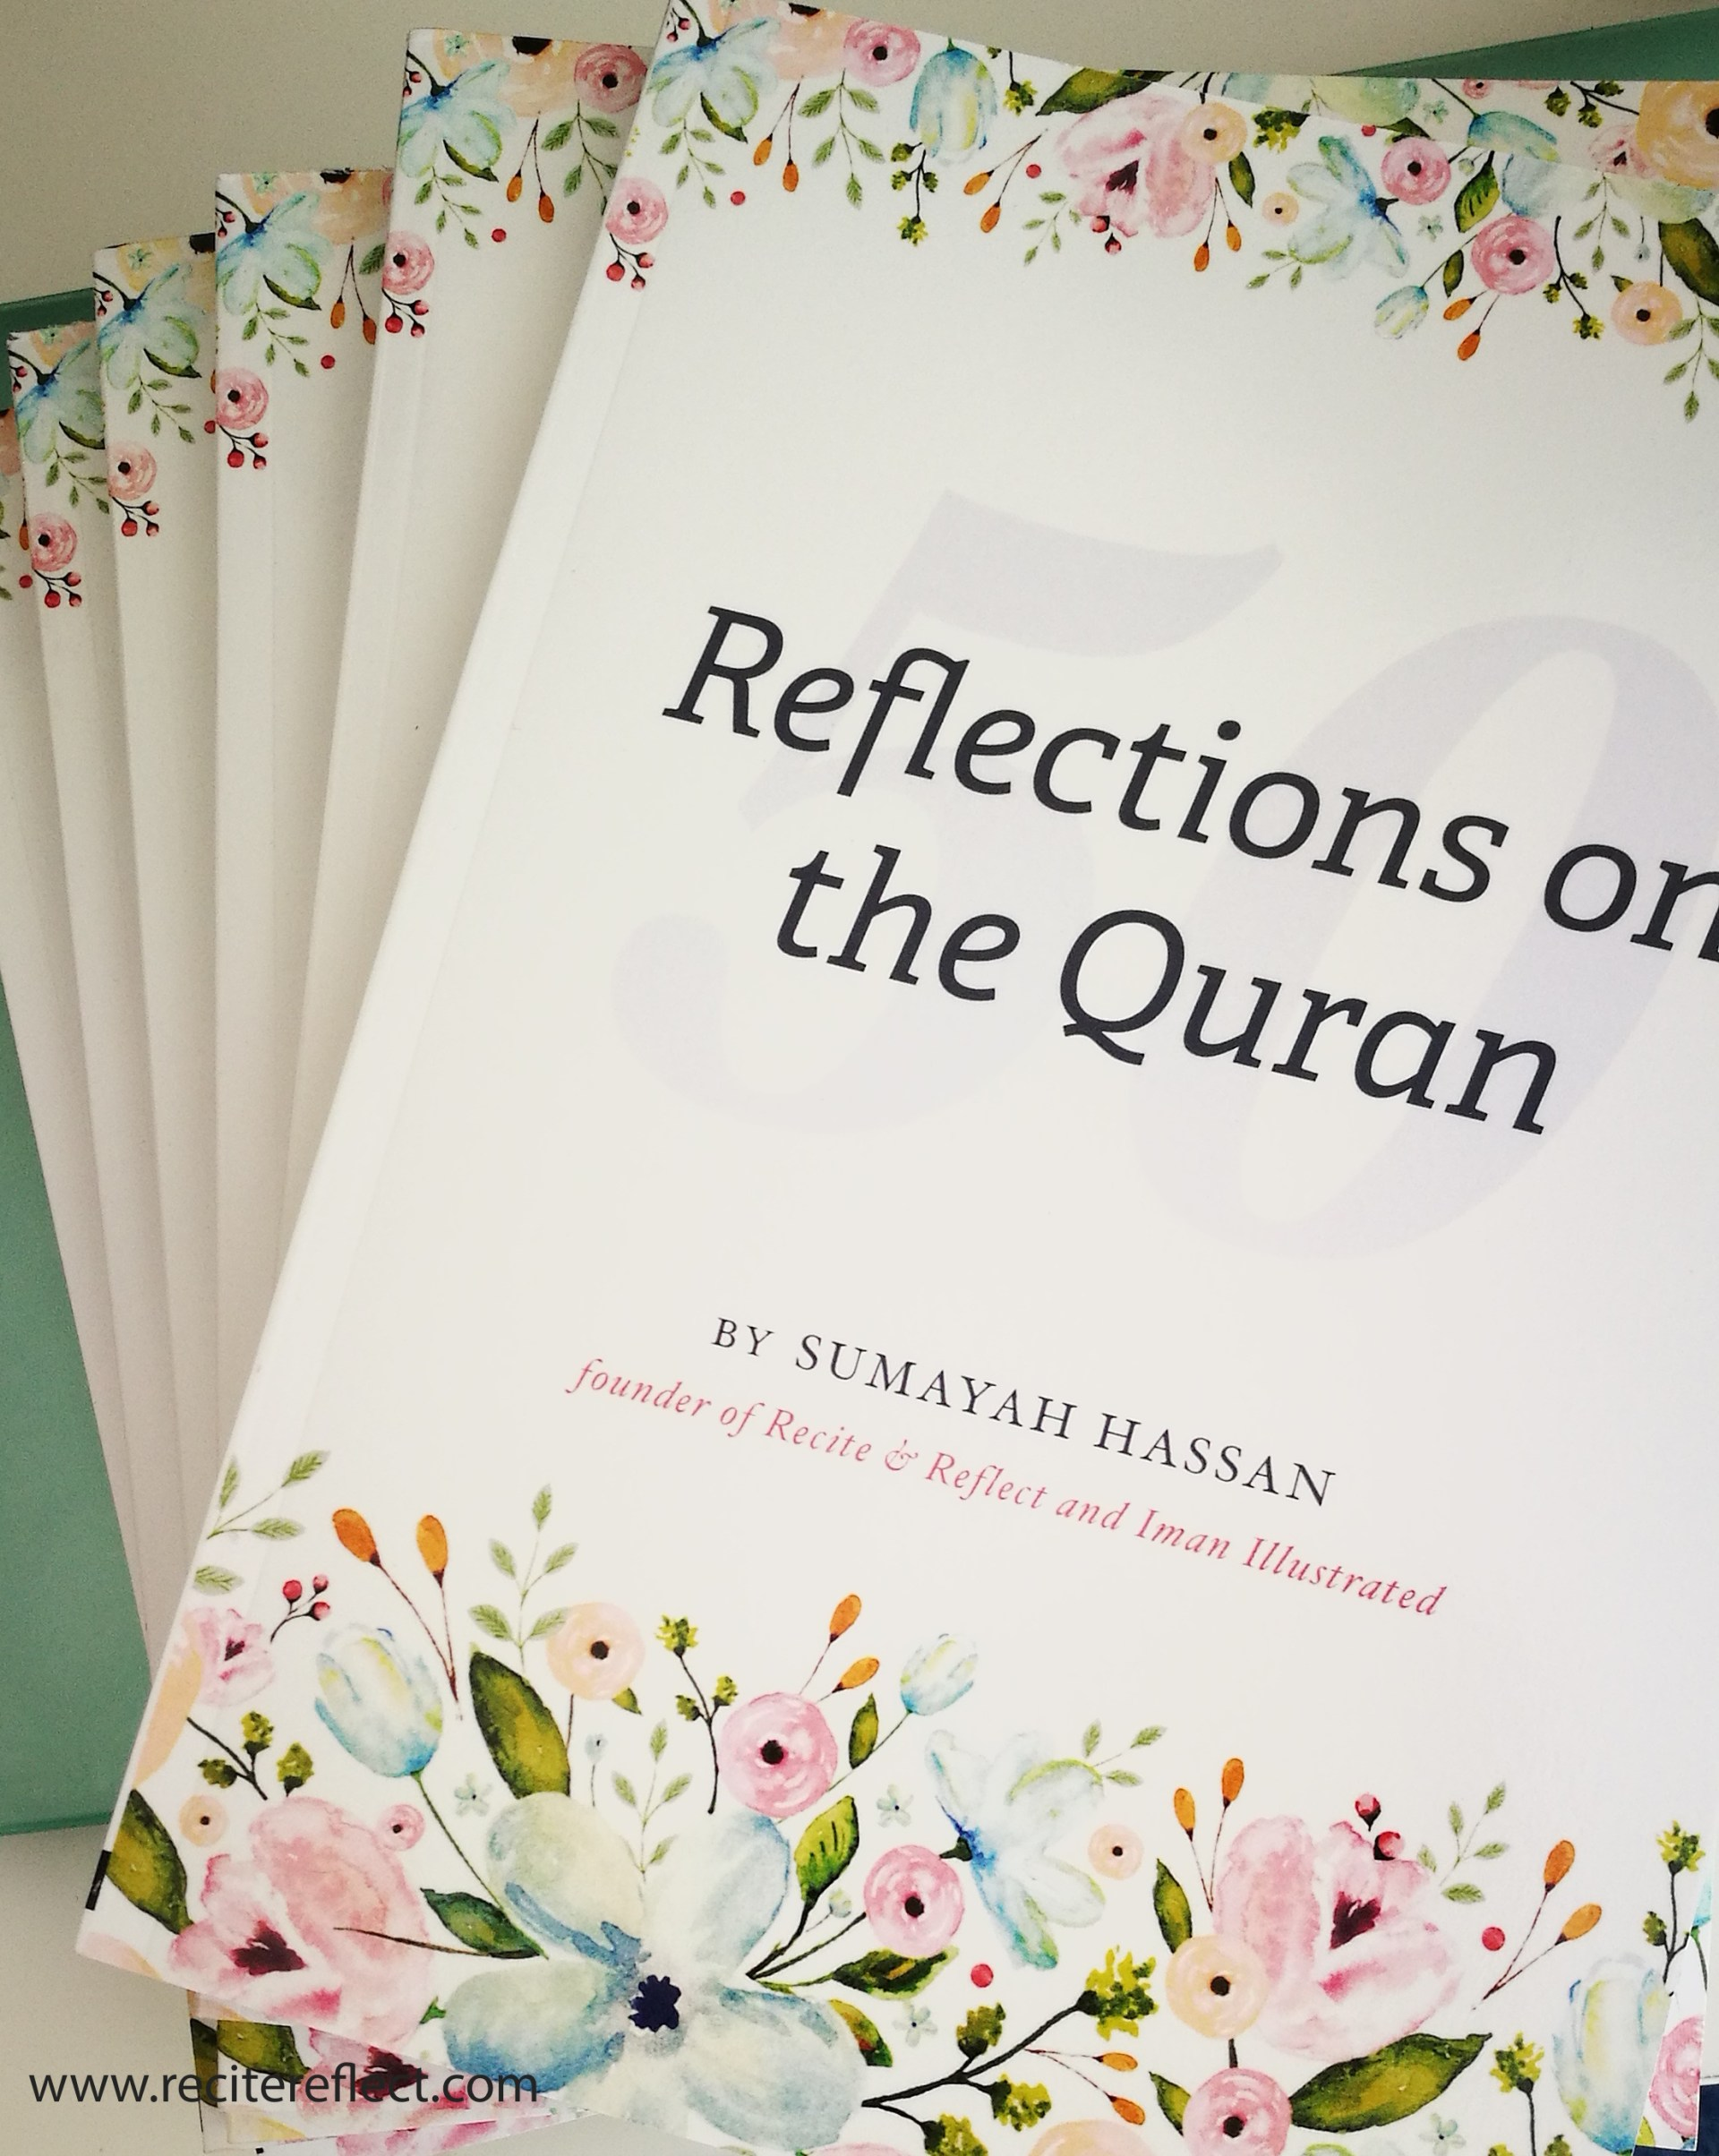 50 Reflections on the Quran by Sumayah Hassan